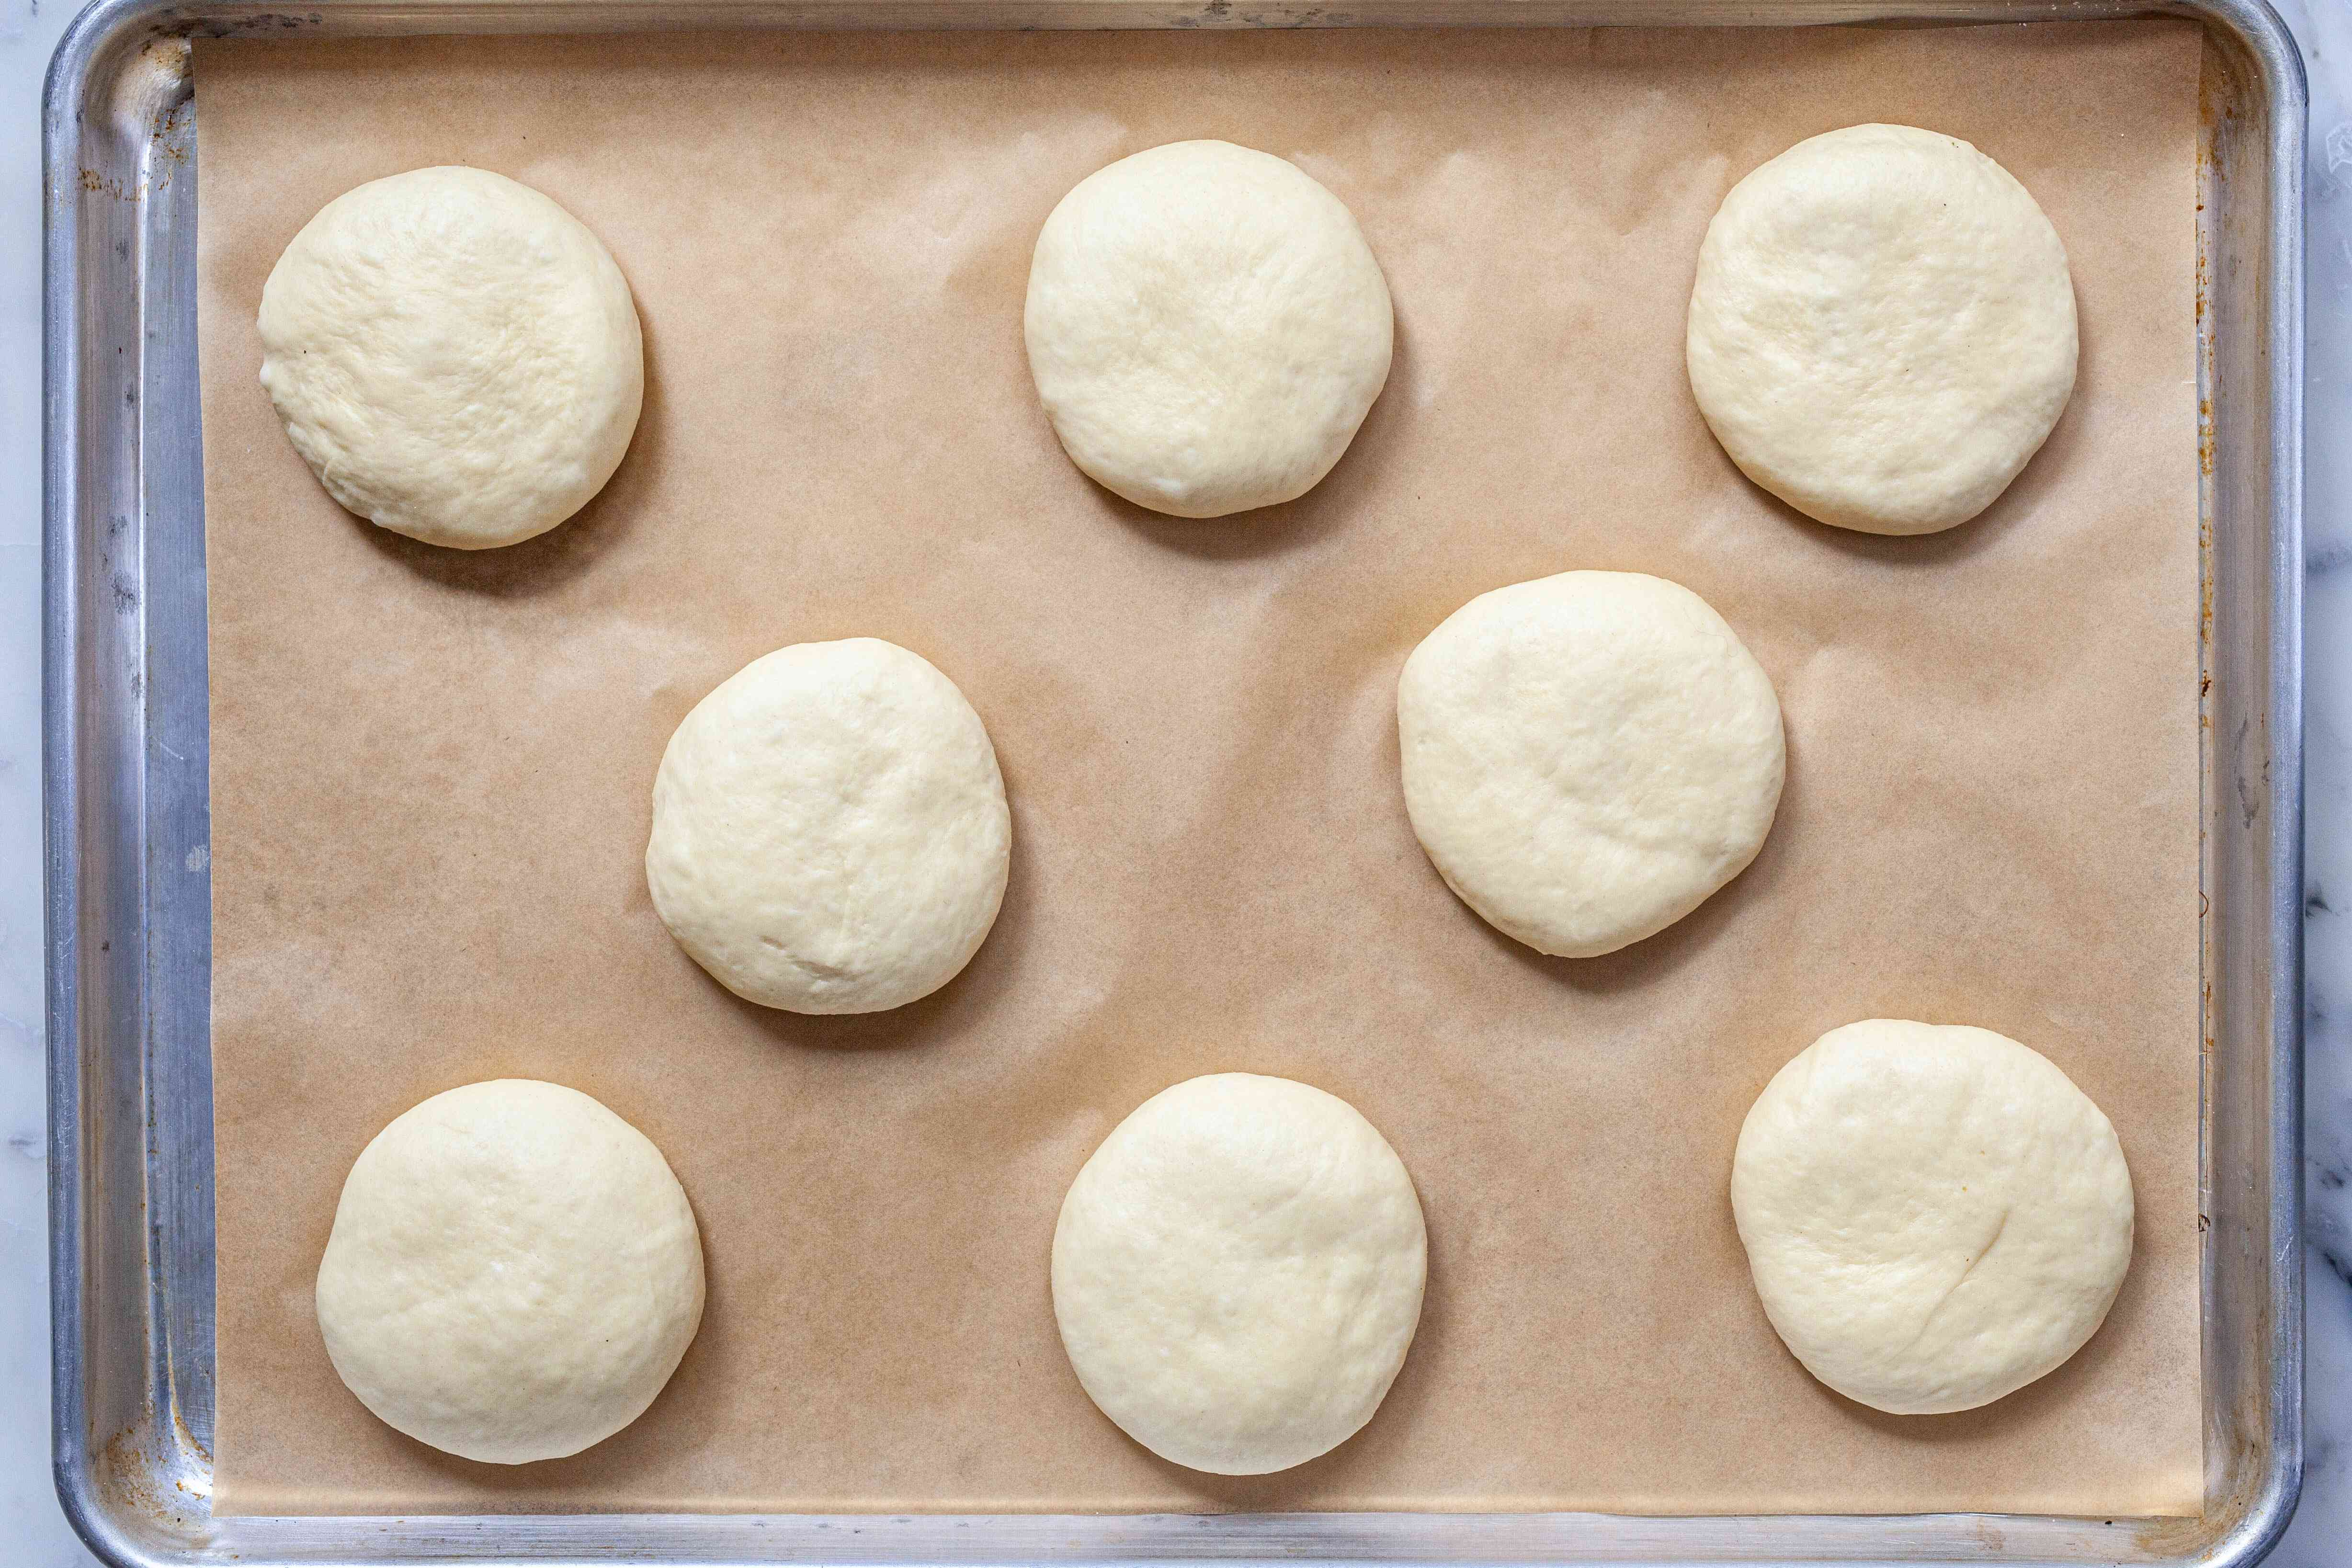 Burger buns ready to be baked on a baking sheet.